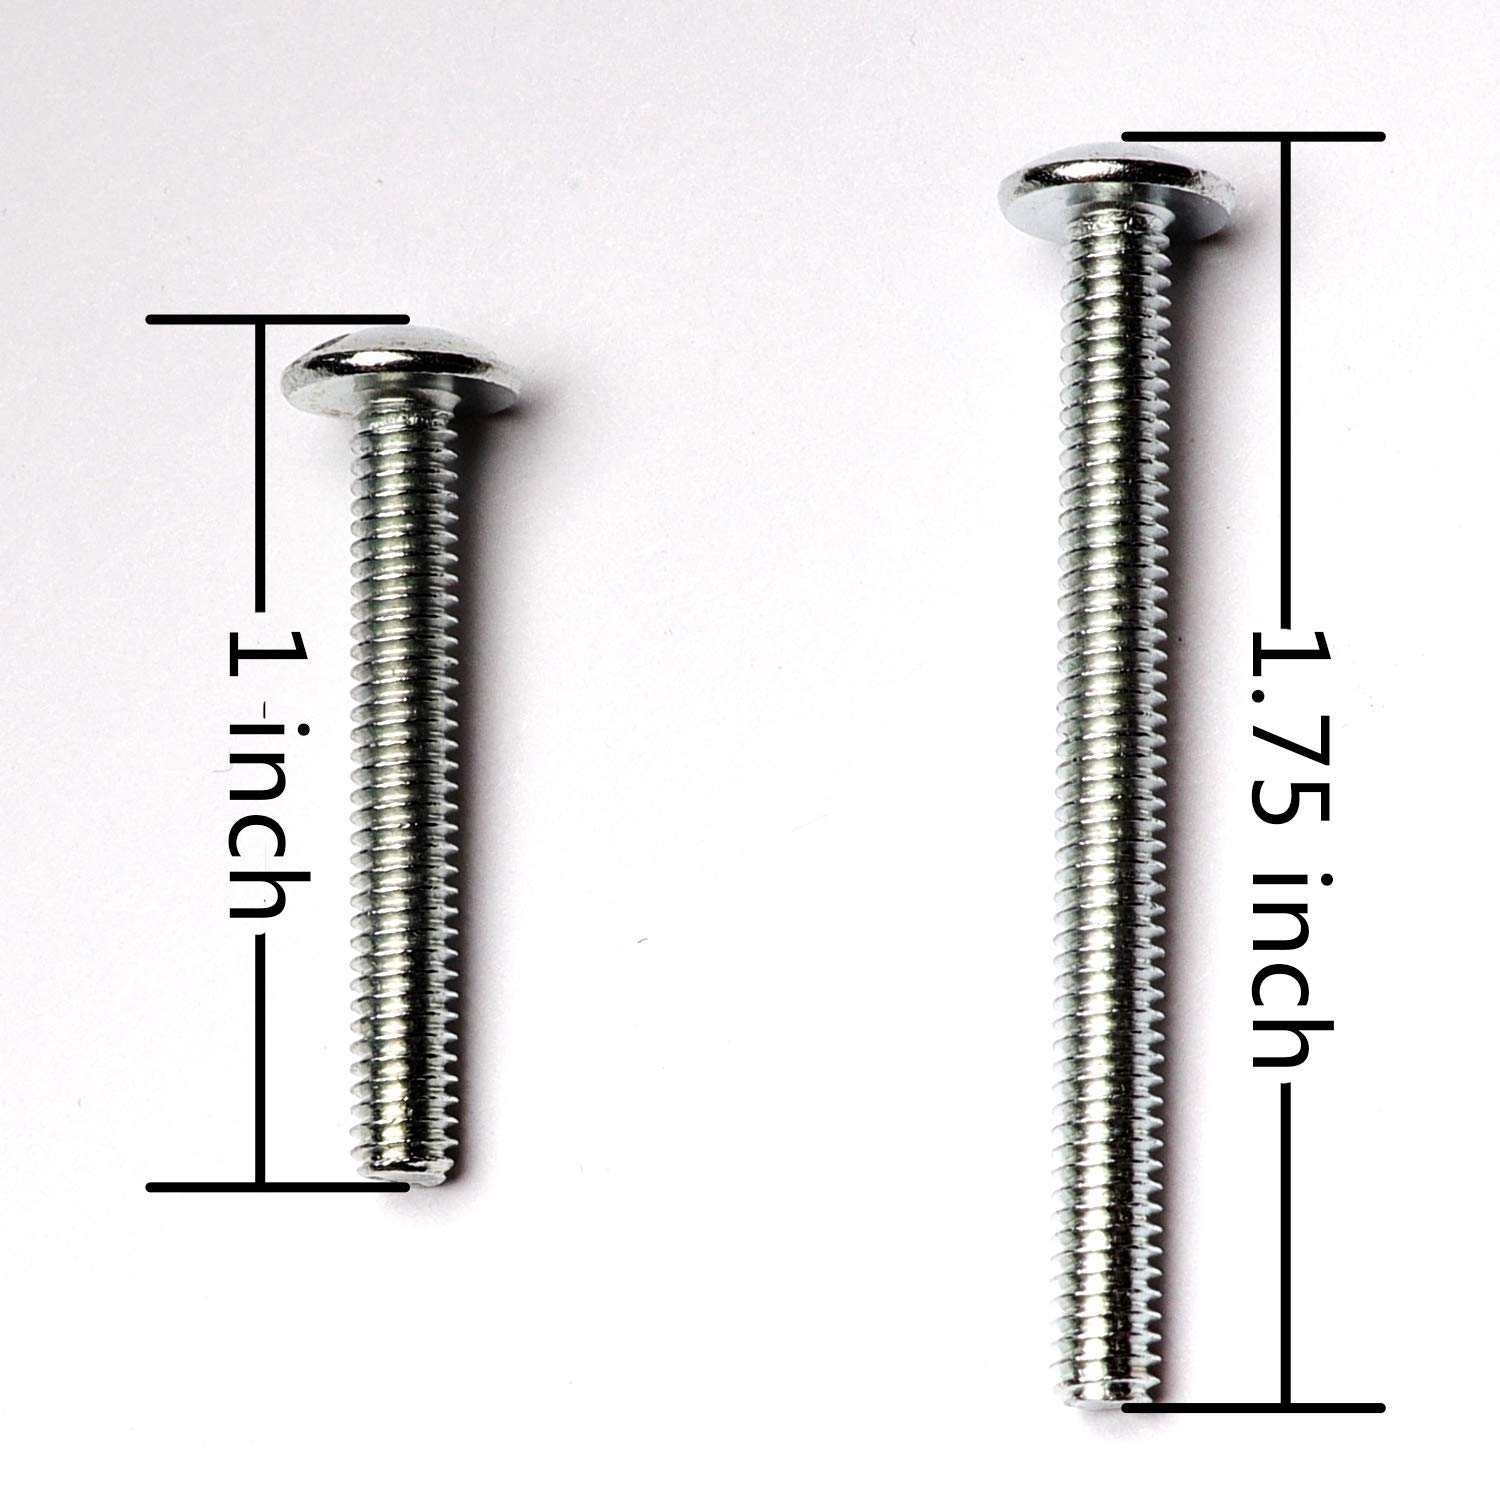 Southern Hills Cabinet Pull Polished Chrome, 4 Inch Screw Spacing, Beveled Handles, Pack of 5, Modern Cabinet Hardware by Southern Hills (Image #4)